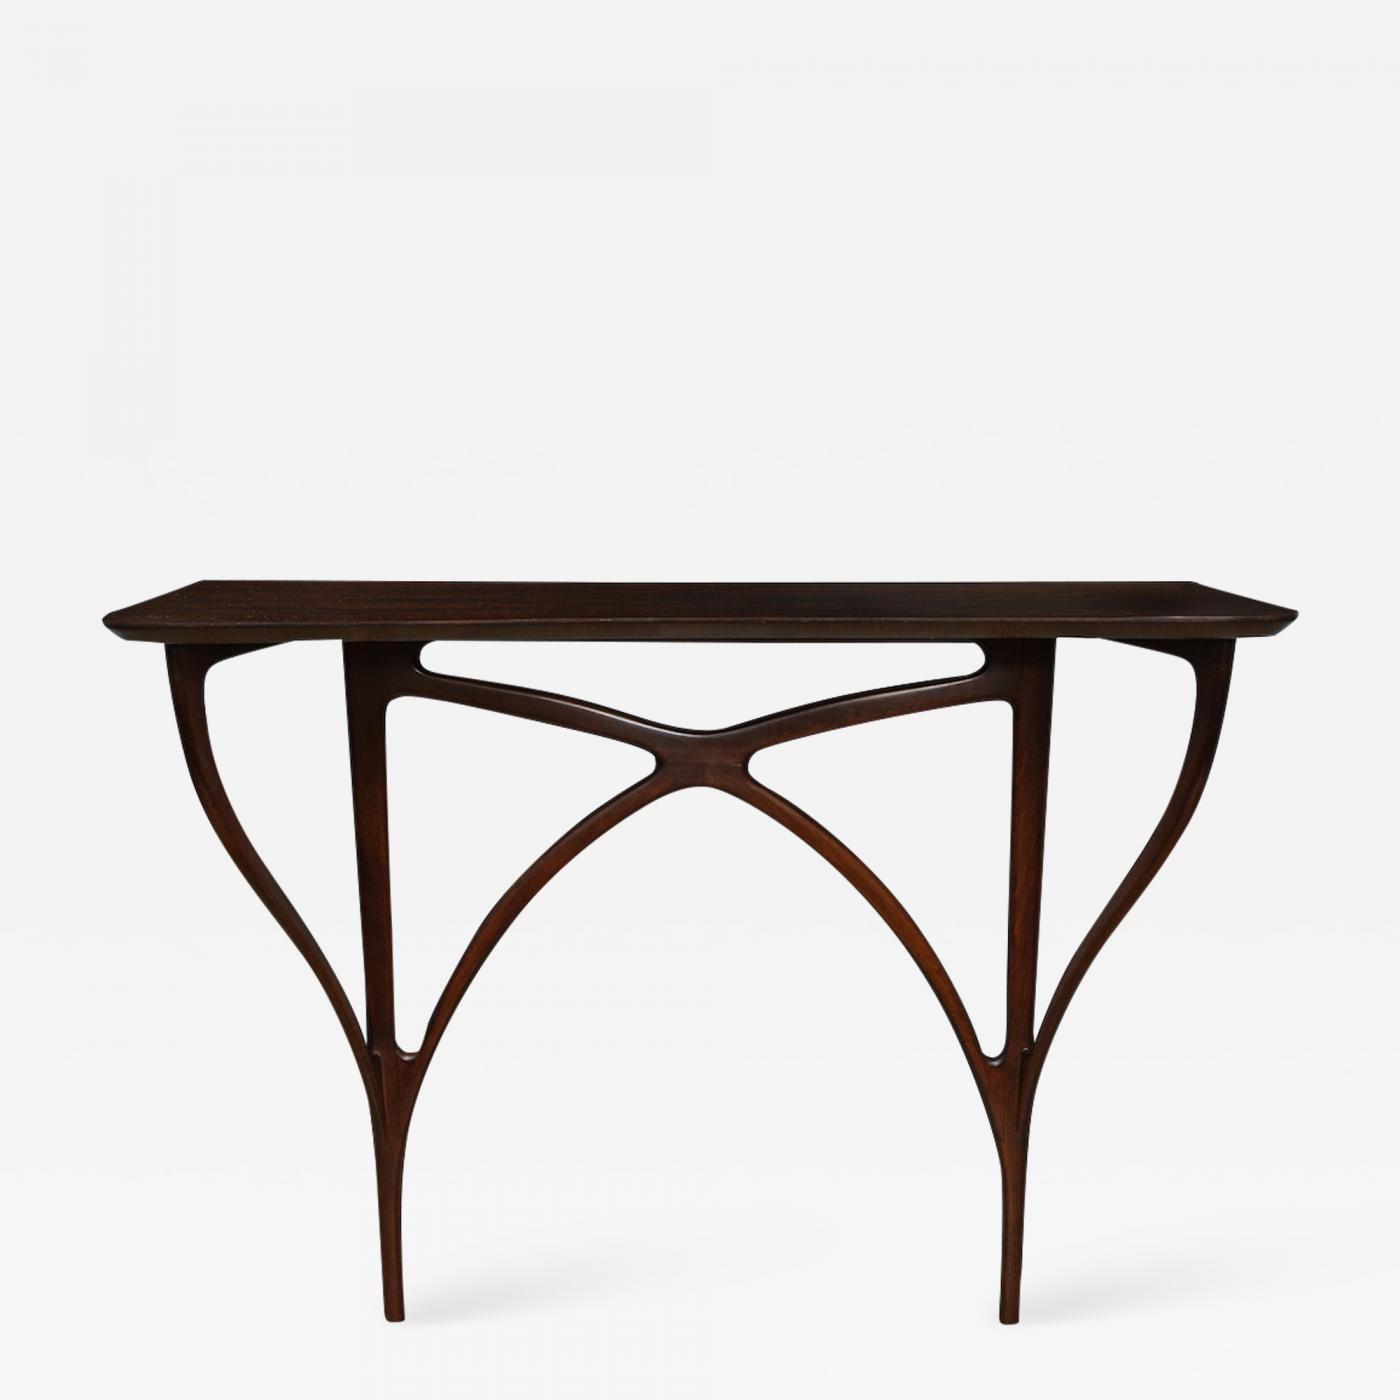 Arte Casa Furniture For Sale Ico Parisi Rare Wall Mounted Console Table By Ico Parisi